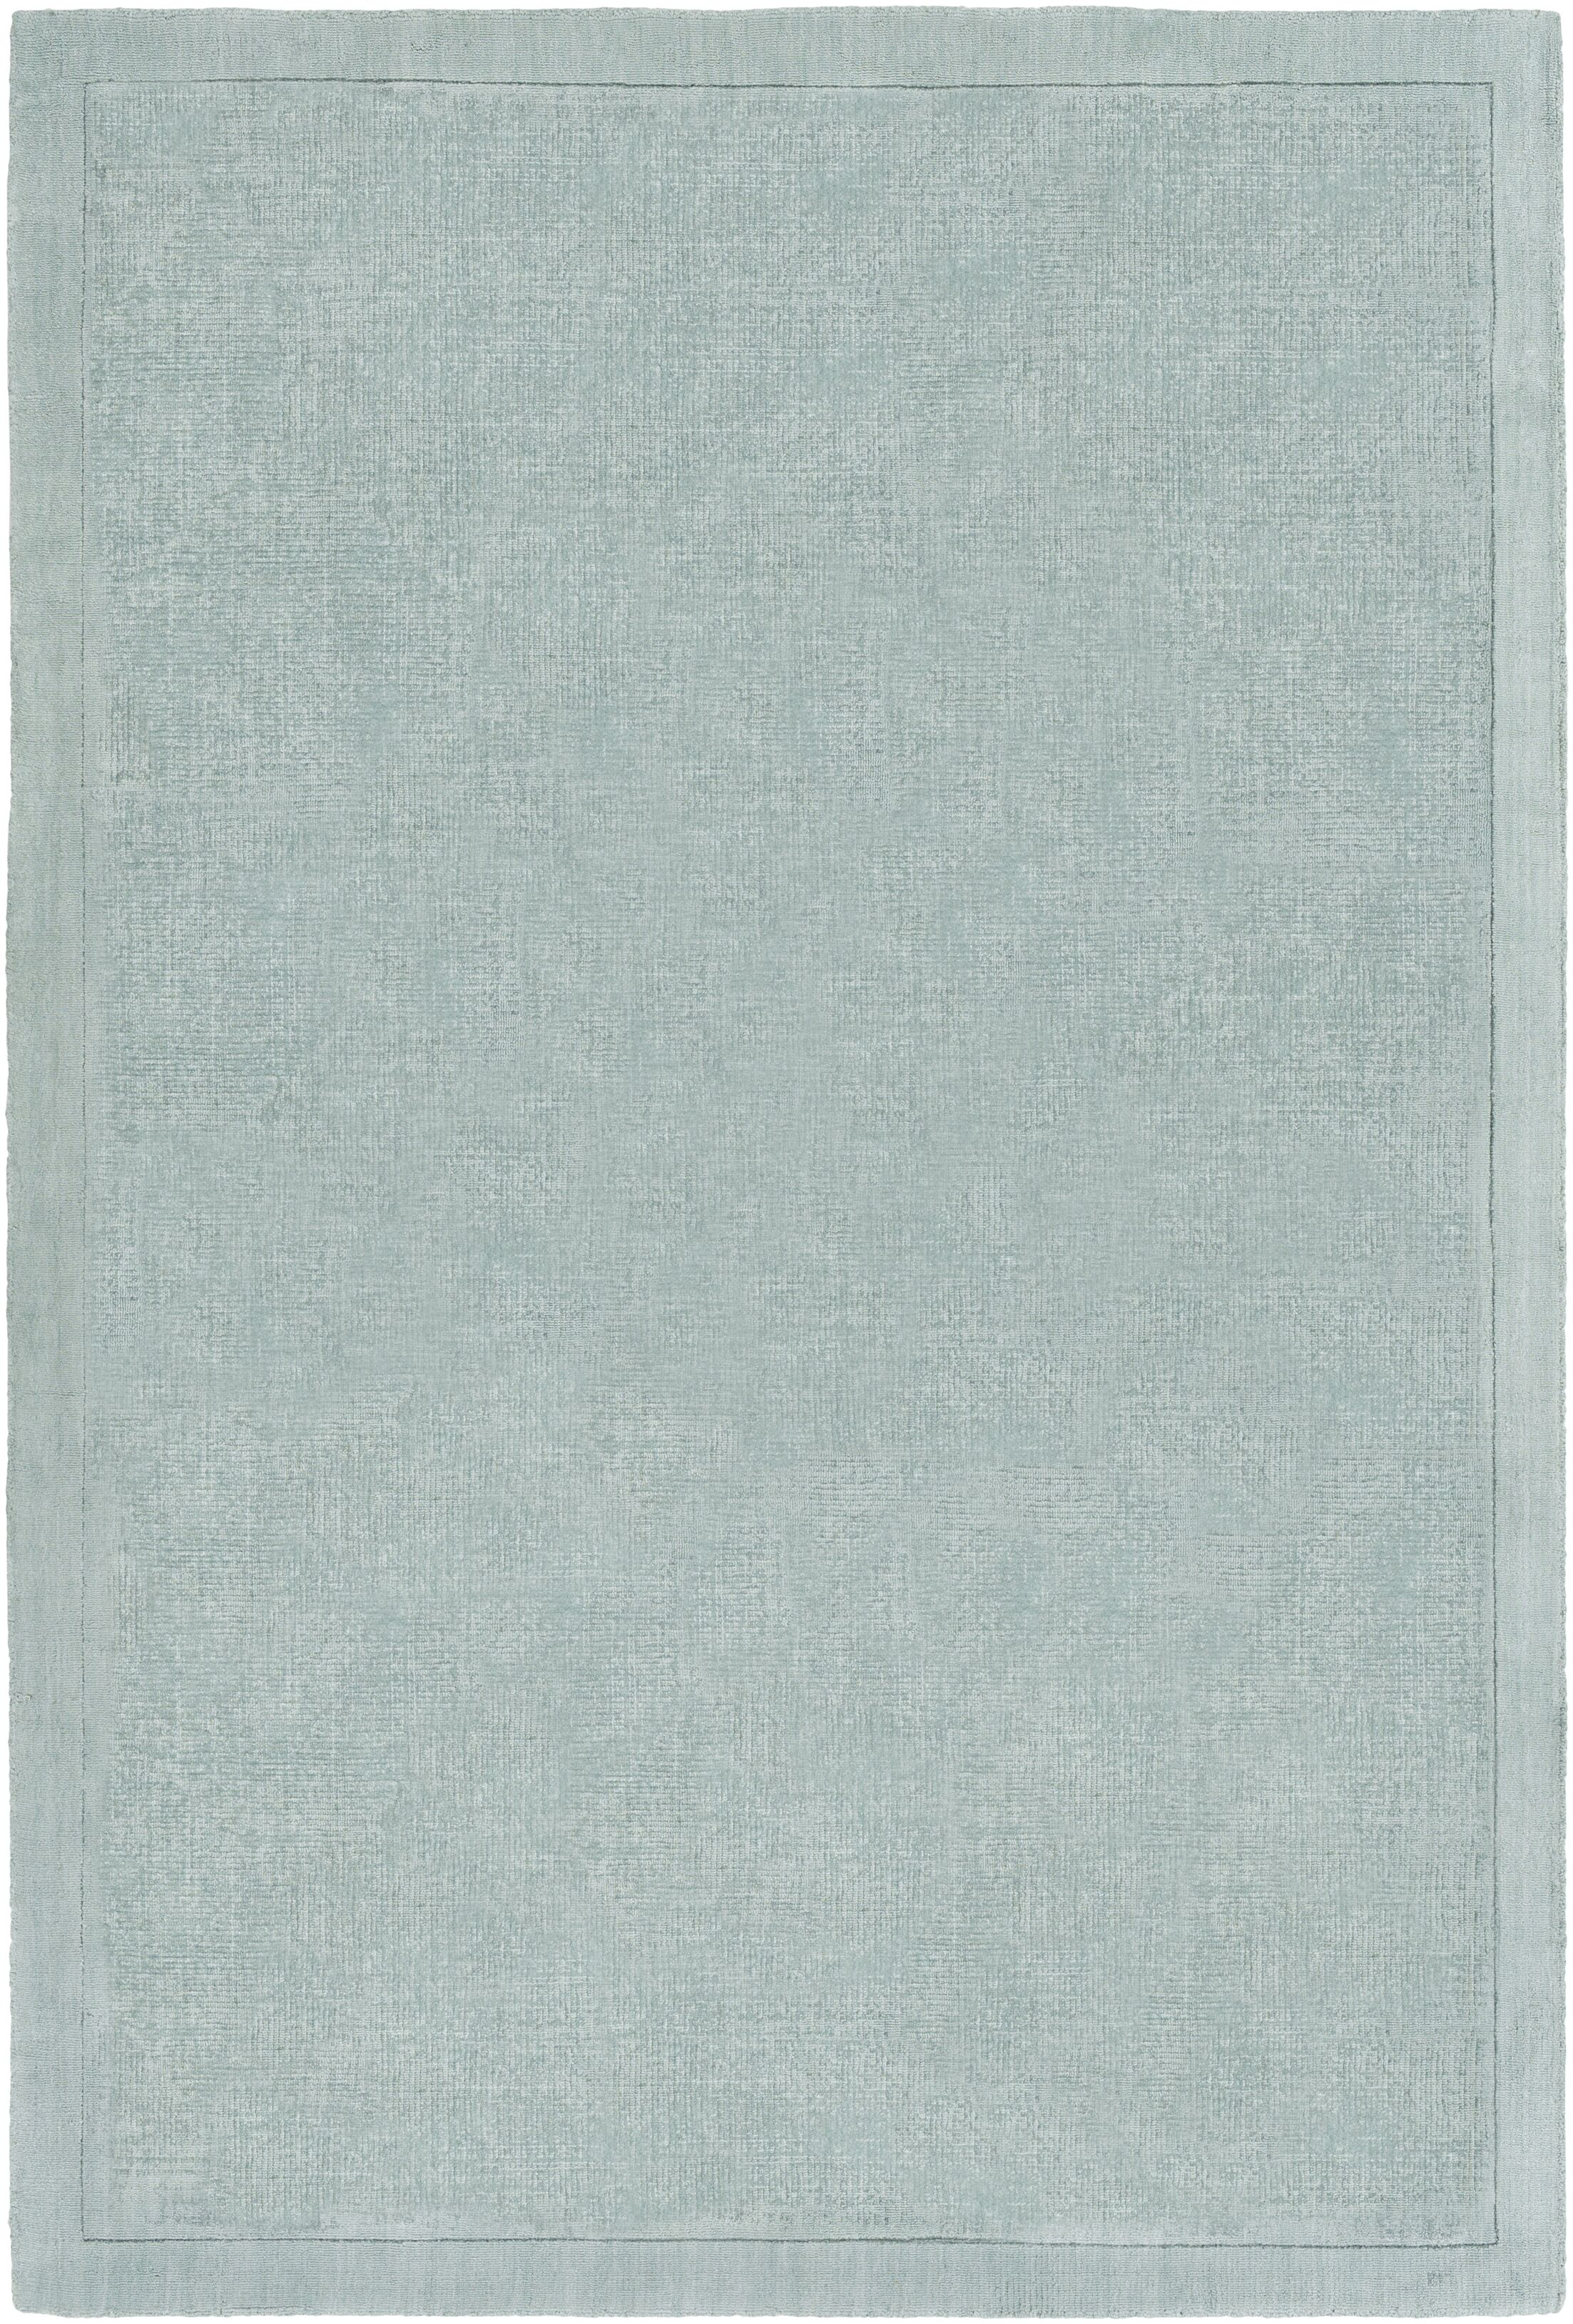 Natalie Hand-Loomed Seafoam Area Rug Rug Size: Rectangle 9' x 12'